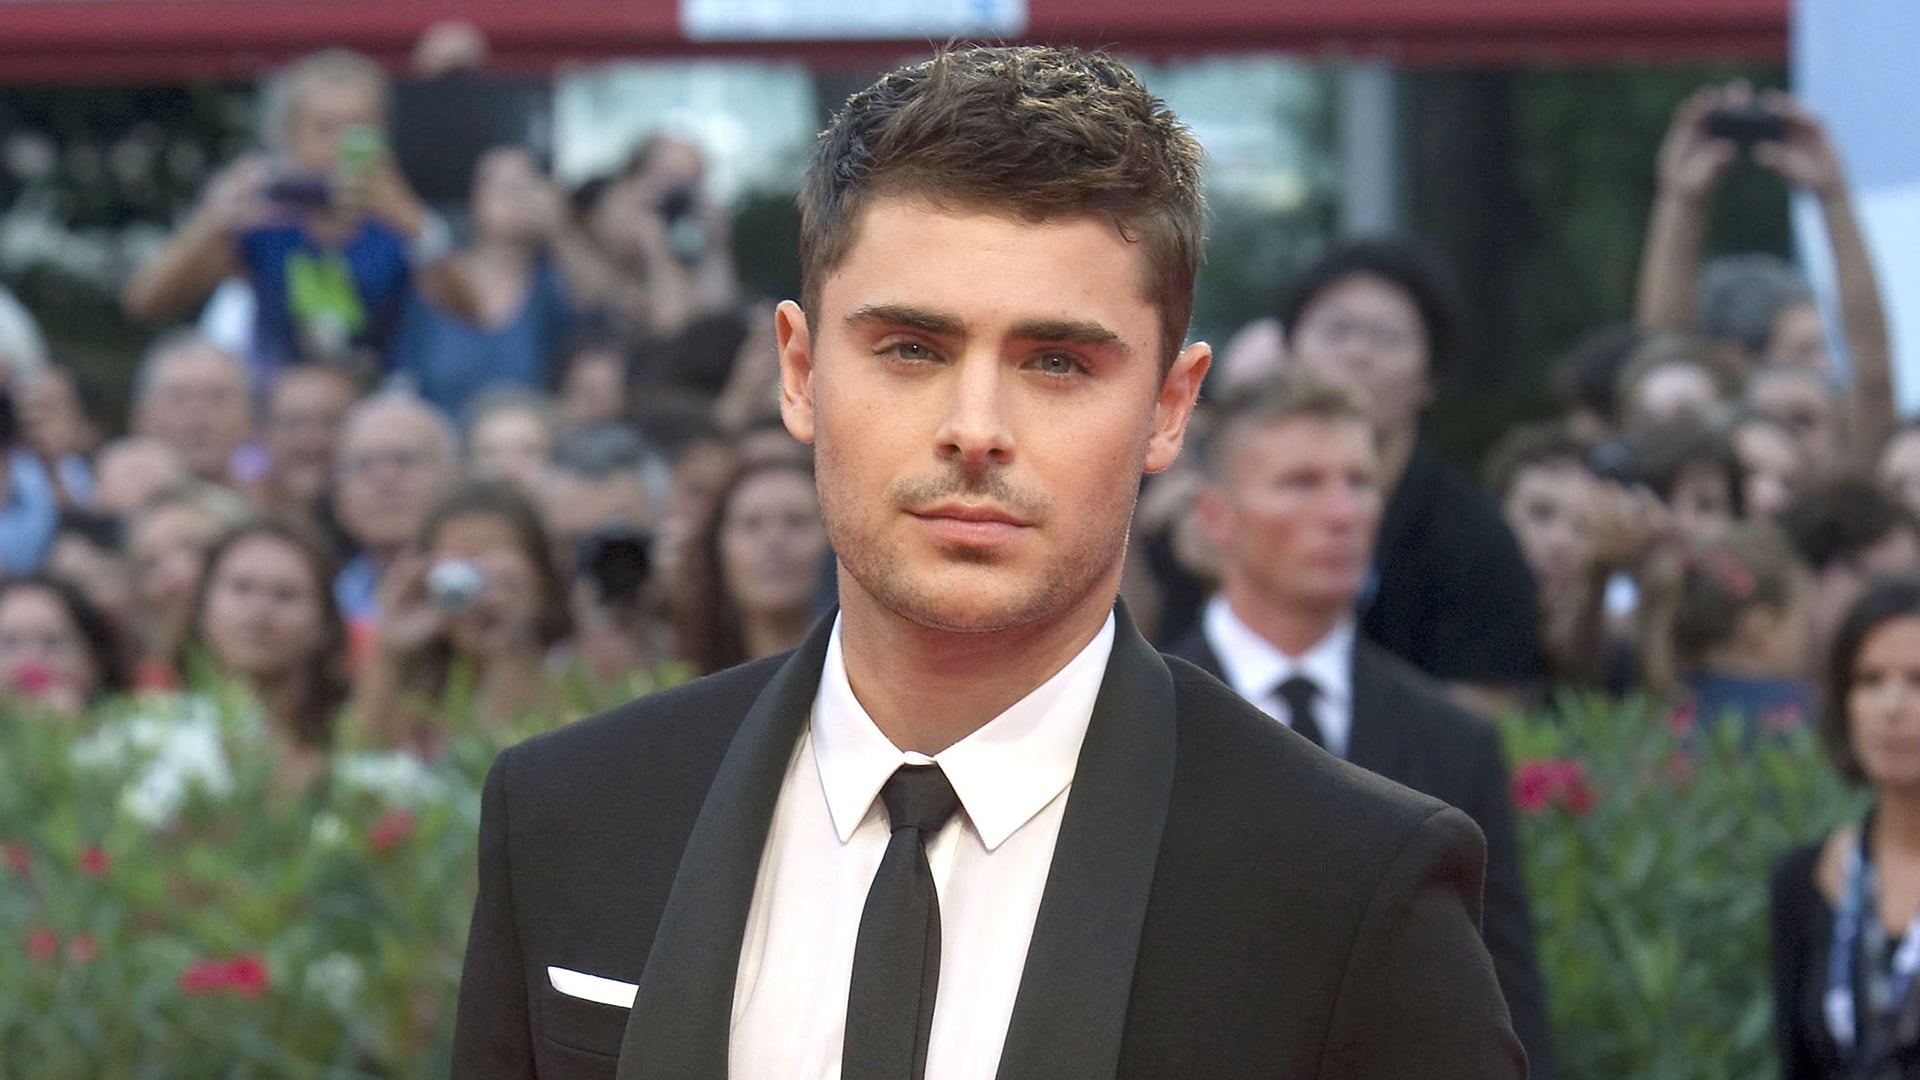 Zac Efron full HD image